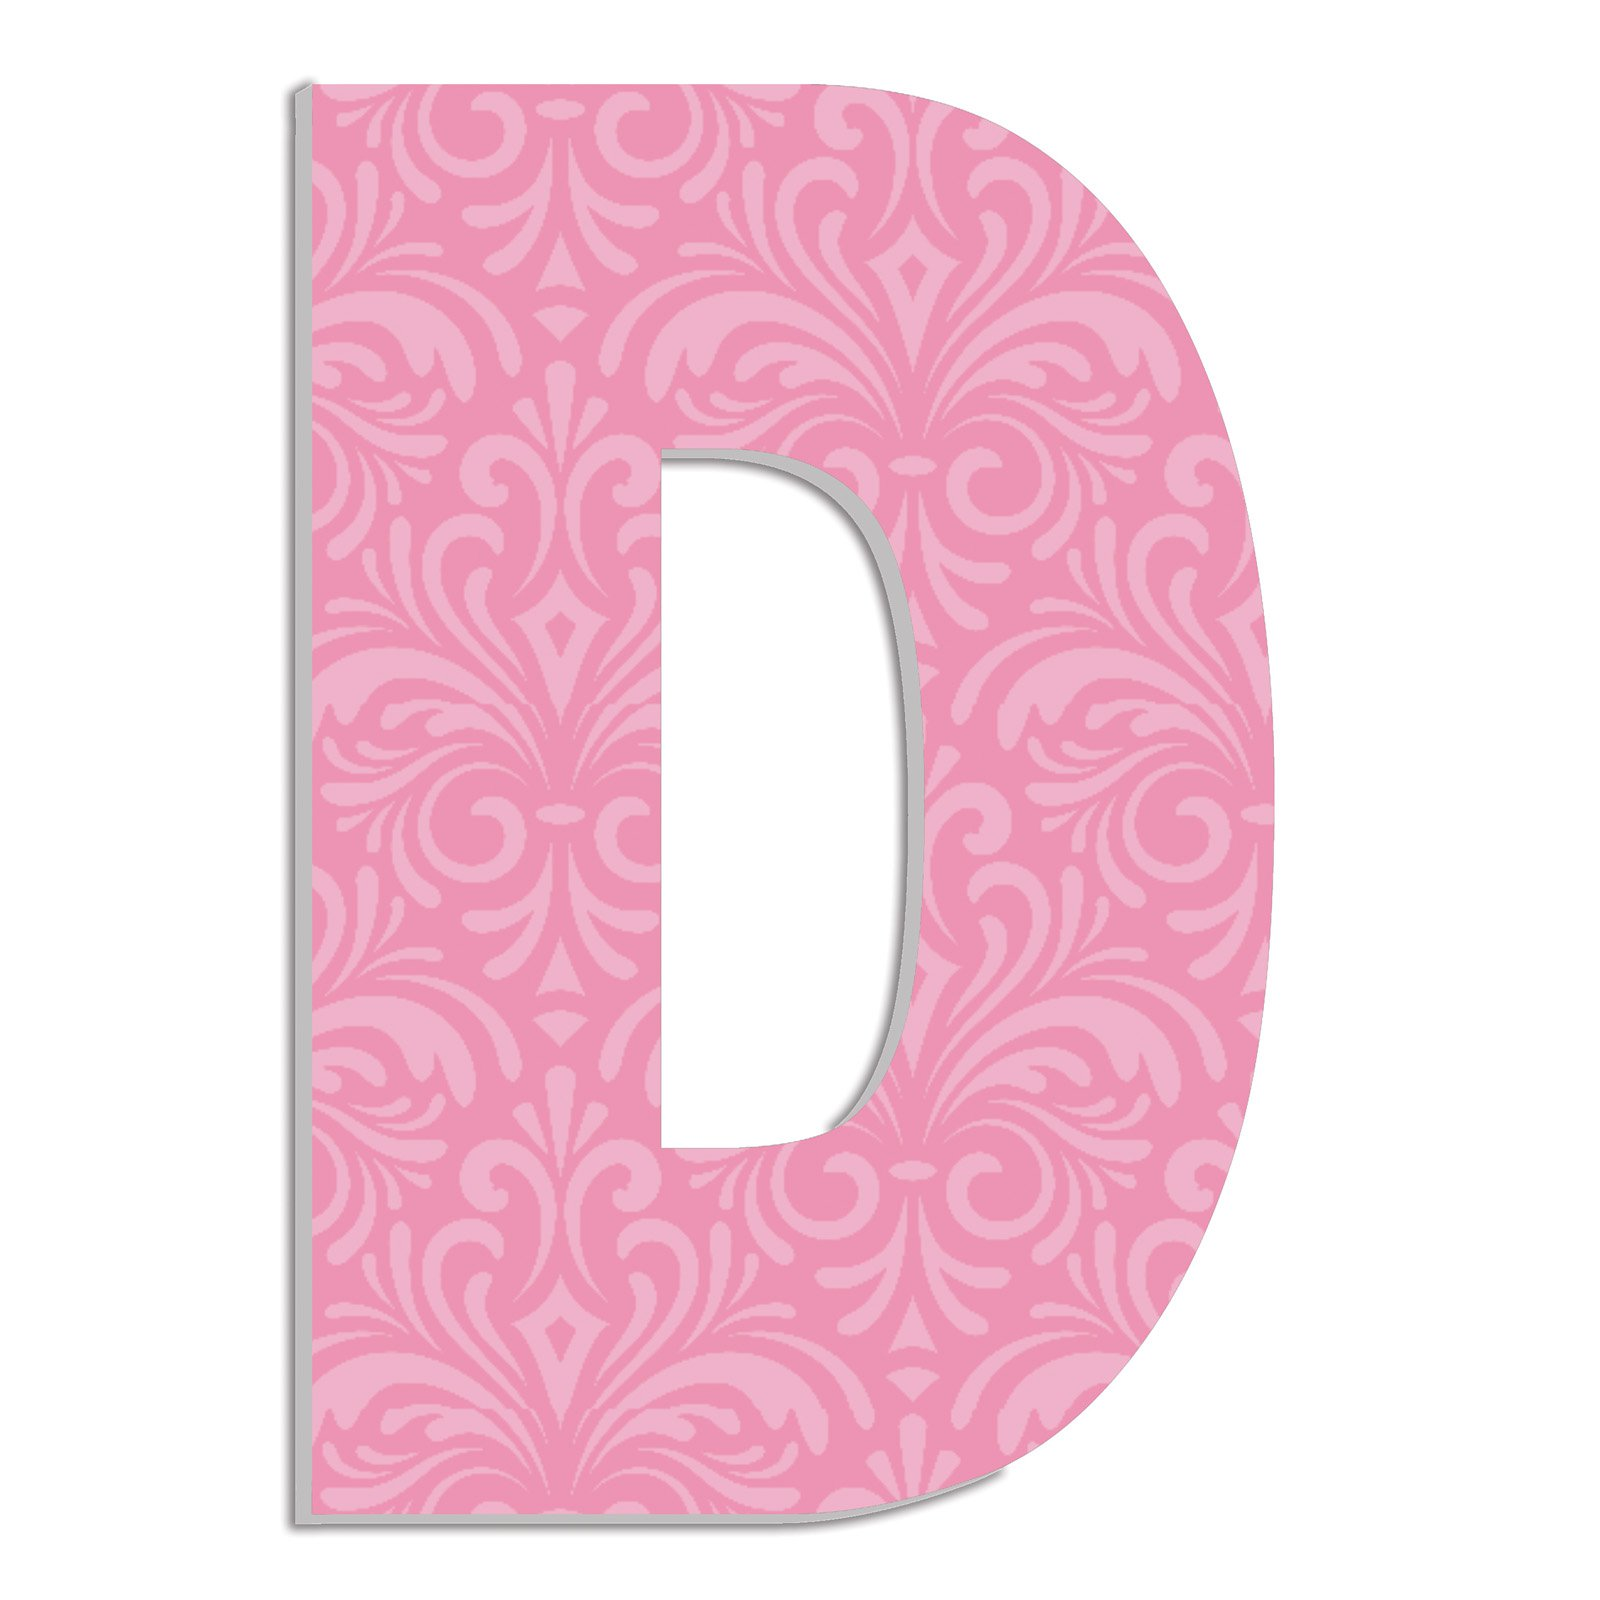 The Stupell Home Decor Collection Stupell Industries Oversized Pink Damask Hanging Initial